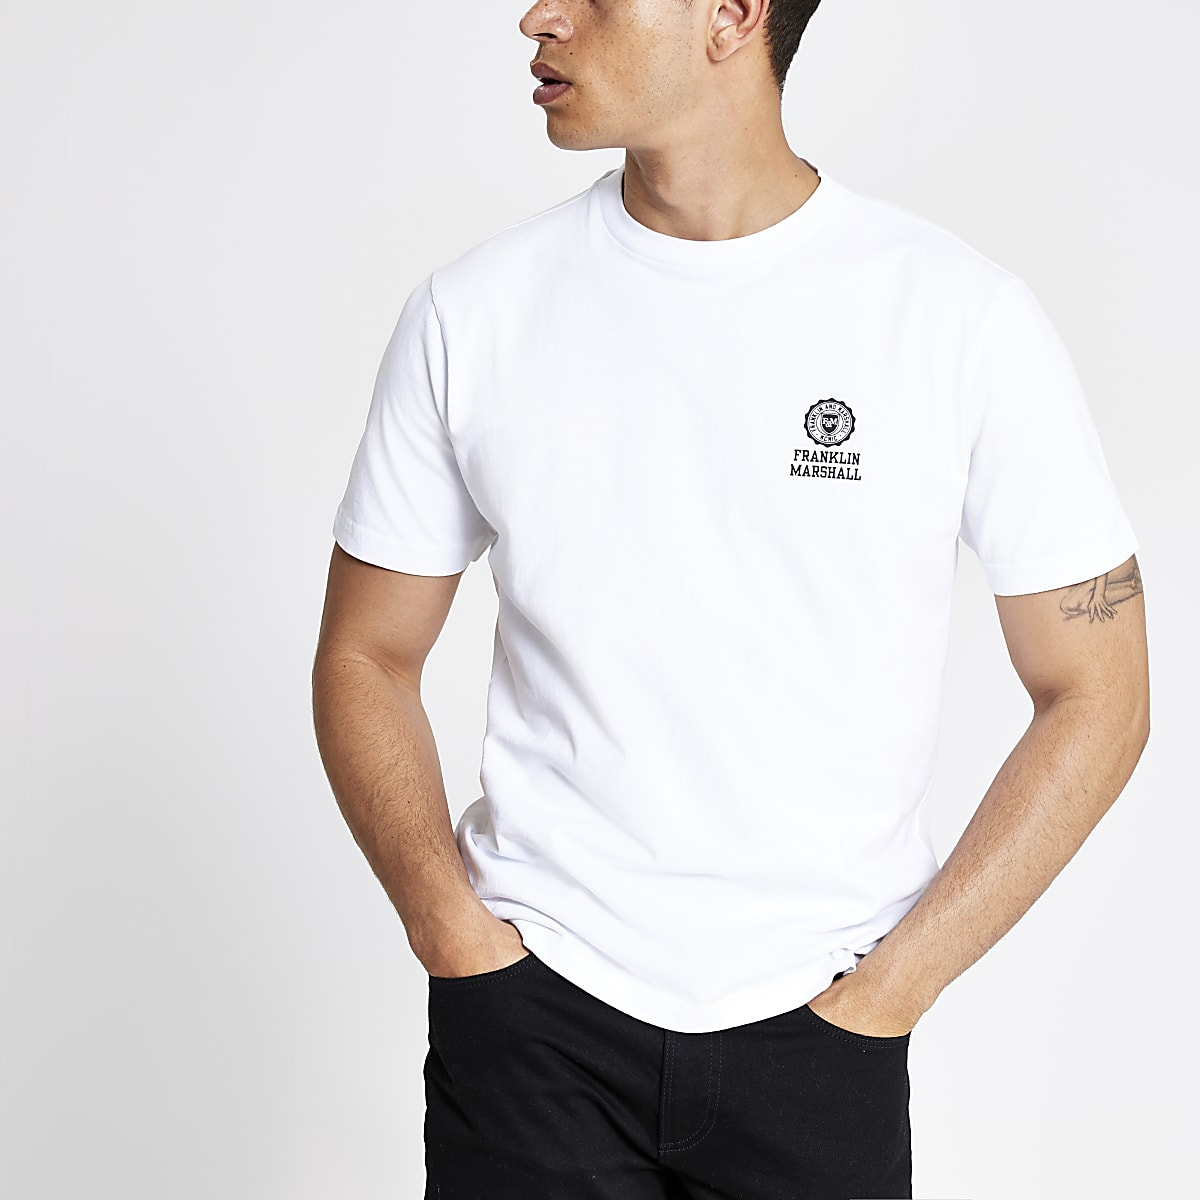 Franklin and Marshall - Wit T-shirt met logo